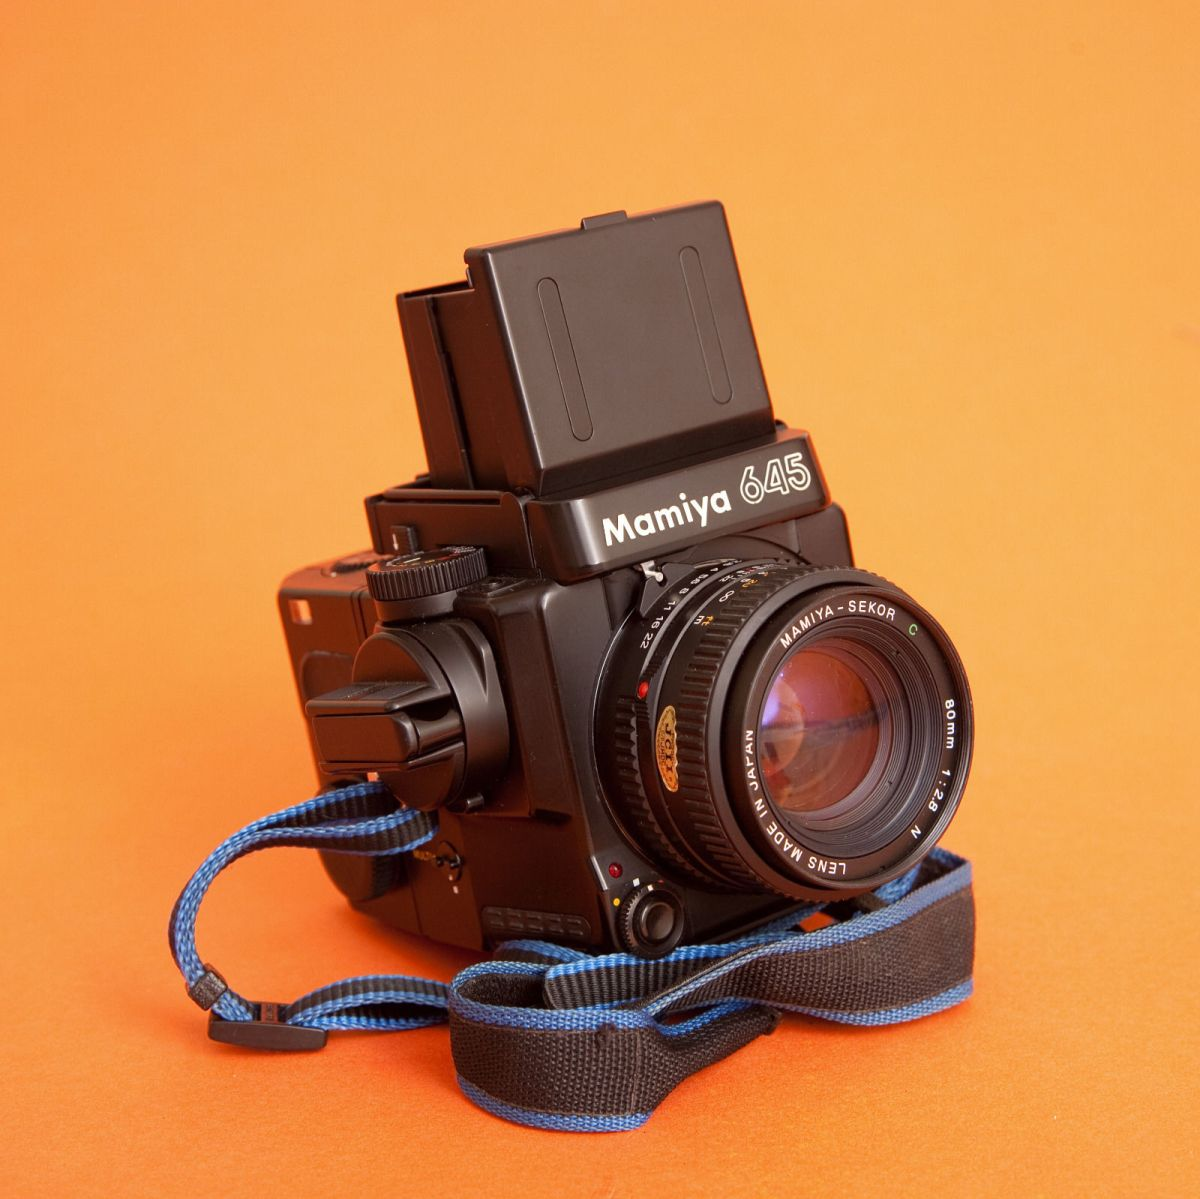 Mamiya 645 Super Review – Cheaper Hasselblad Alternative? (+User Guide)